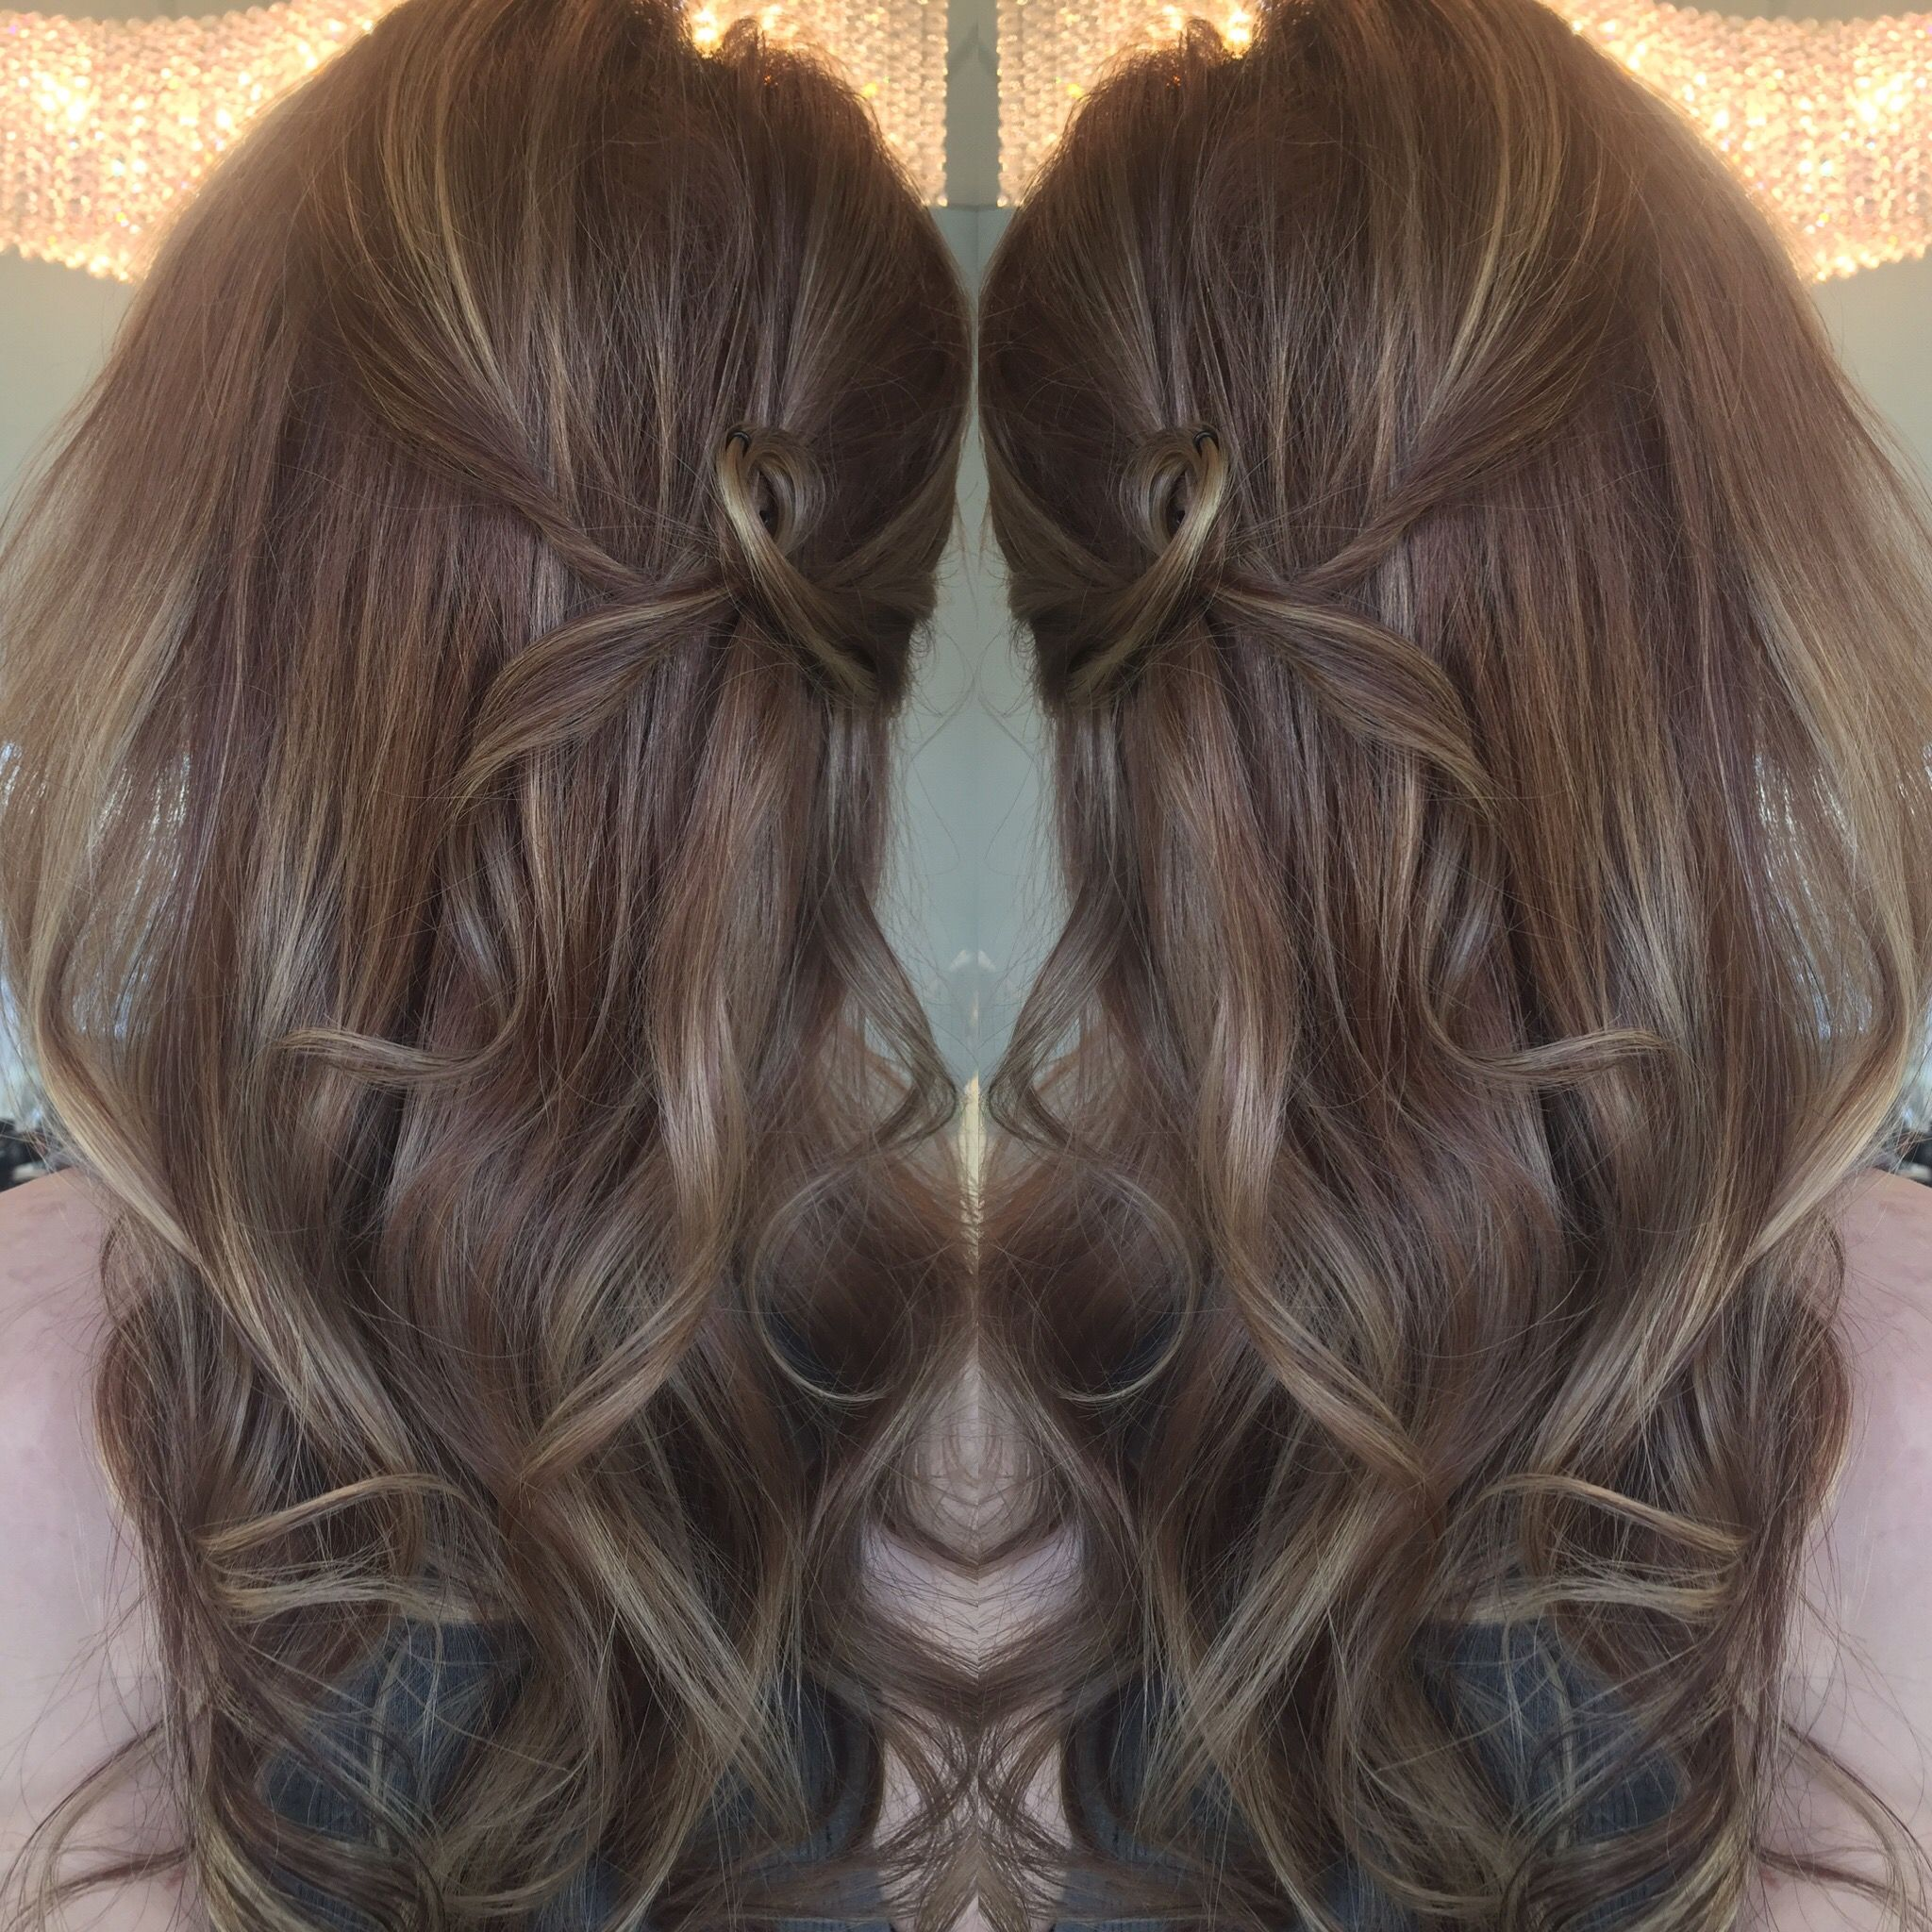 Ashy Brown Color With Lowlights And Highlights Brown Hair With Lowlights Low Lights Hair Brunette Hair Color